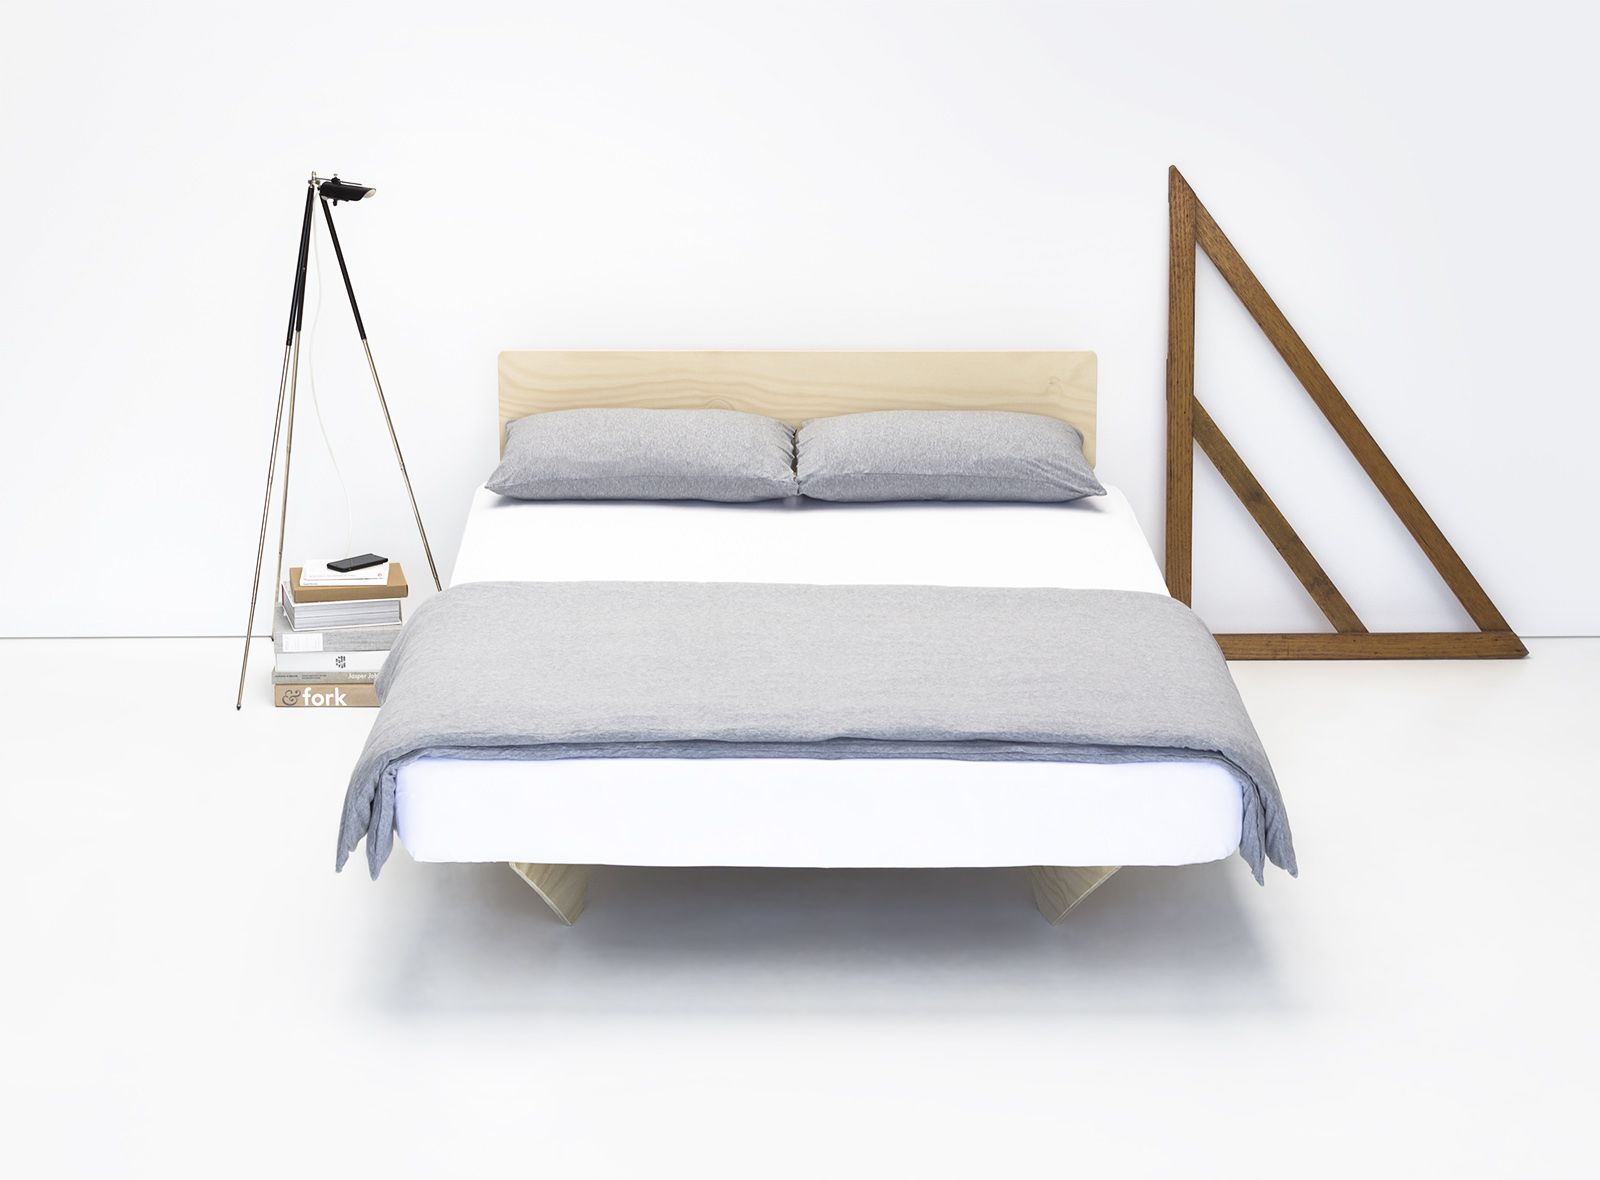 Object Utility Flat Pack Bed Bed Furniture Simple Bed